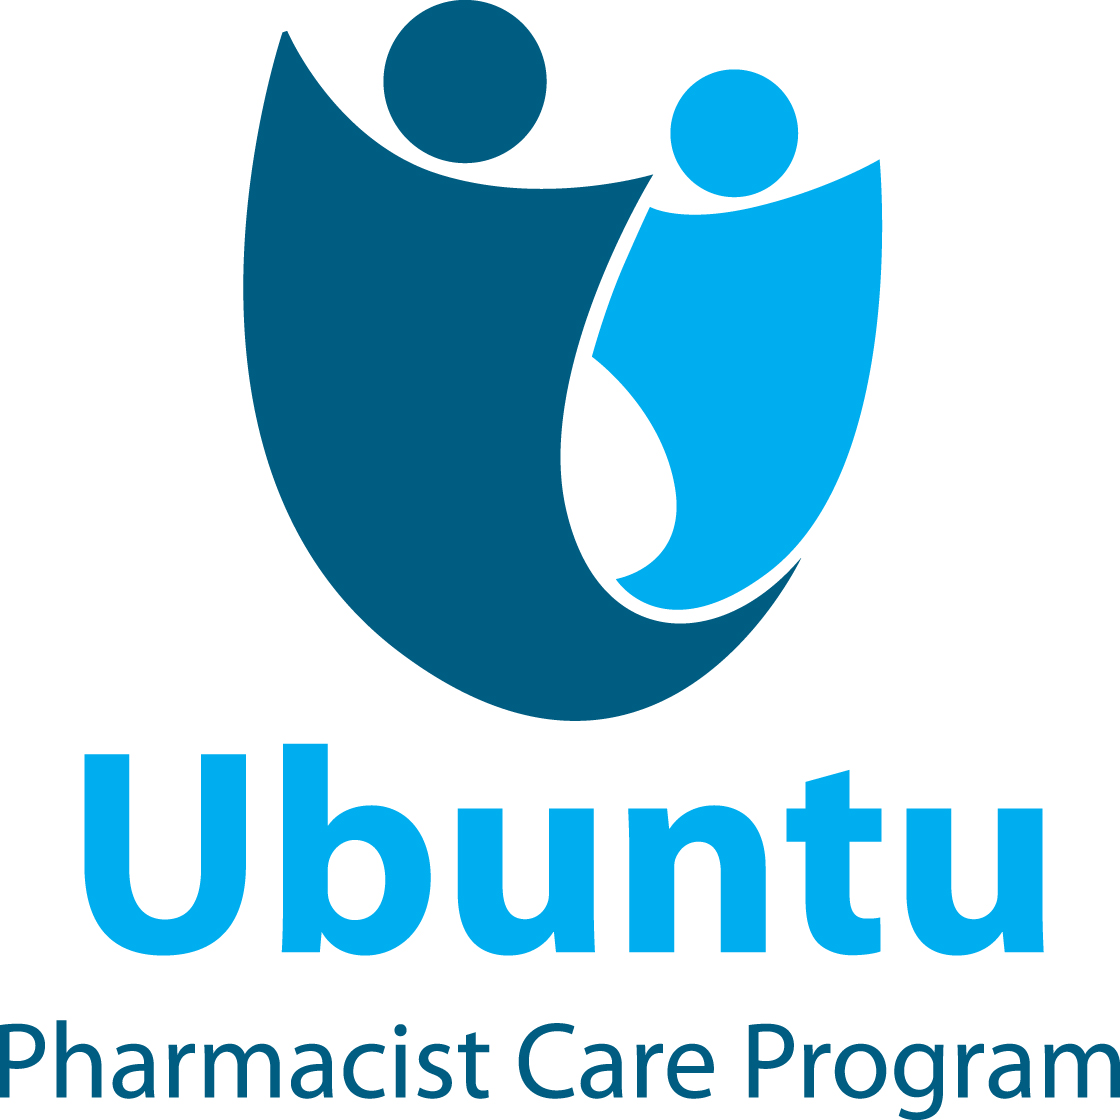 CP15 – Ubuntu Pharmacist Care Program…Connecting the Dots